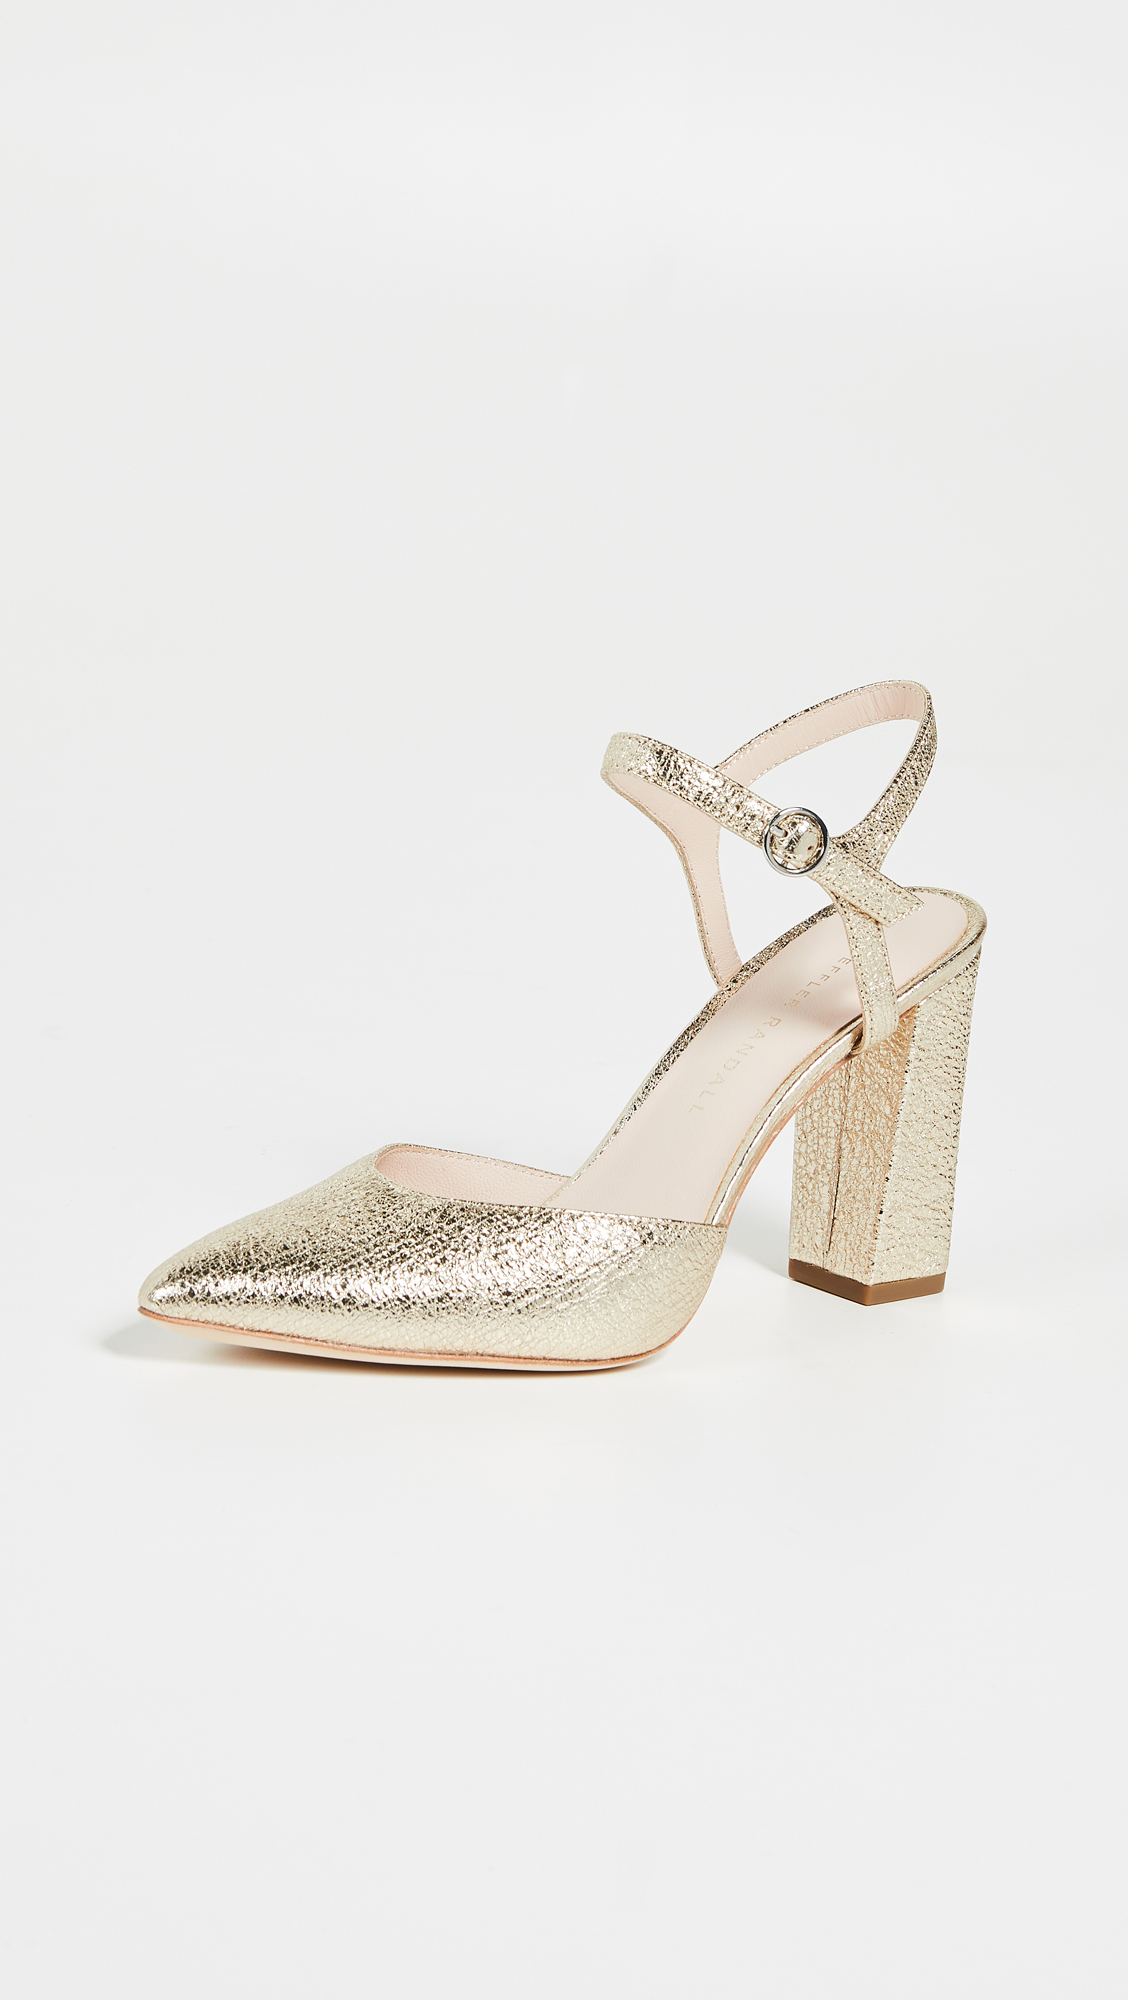 Loeffler Randall Metallic Pumps (New Year's Eve Shoes)